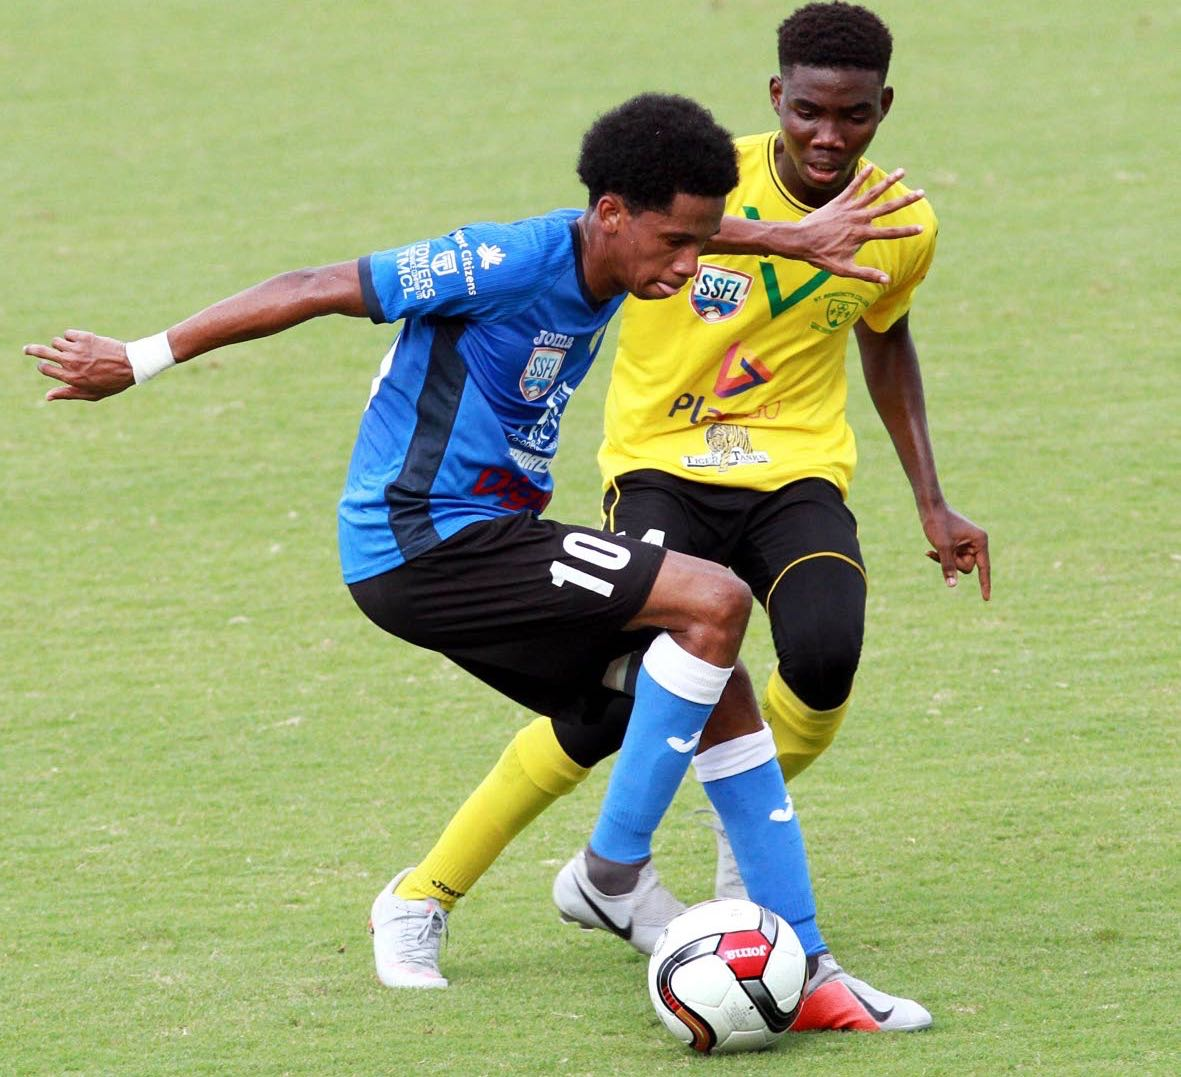 At left, Jordan Riley of Presentation College, San Fernando and Kareem Phillip of St. Benedict's College battle for the ball during an SSFL match, which took place yesterday, at Mannie Ramjohn Stadium, Marabella.